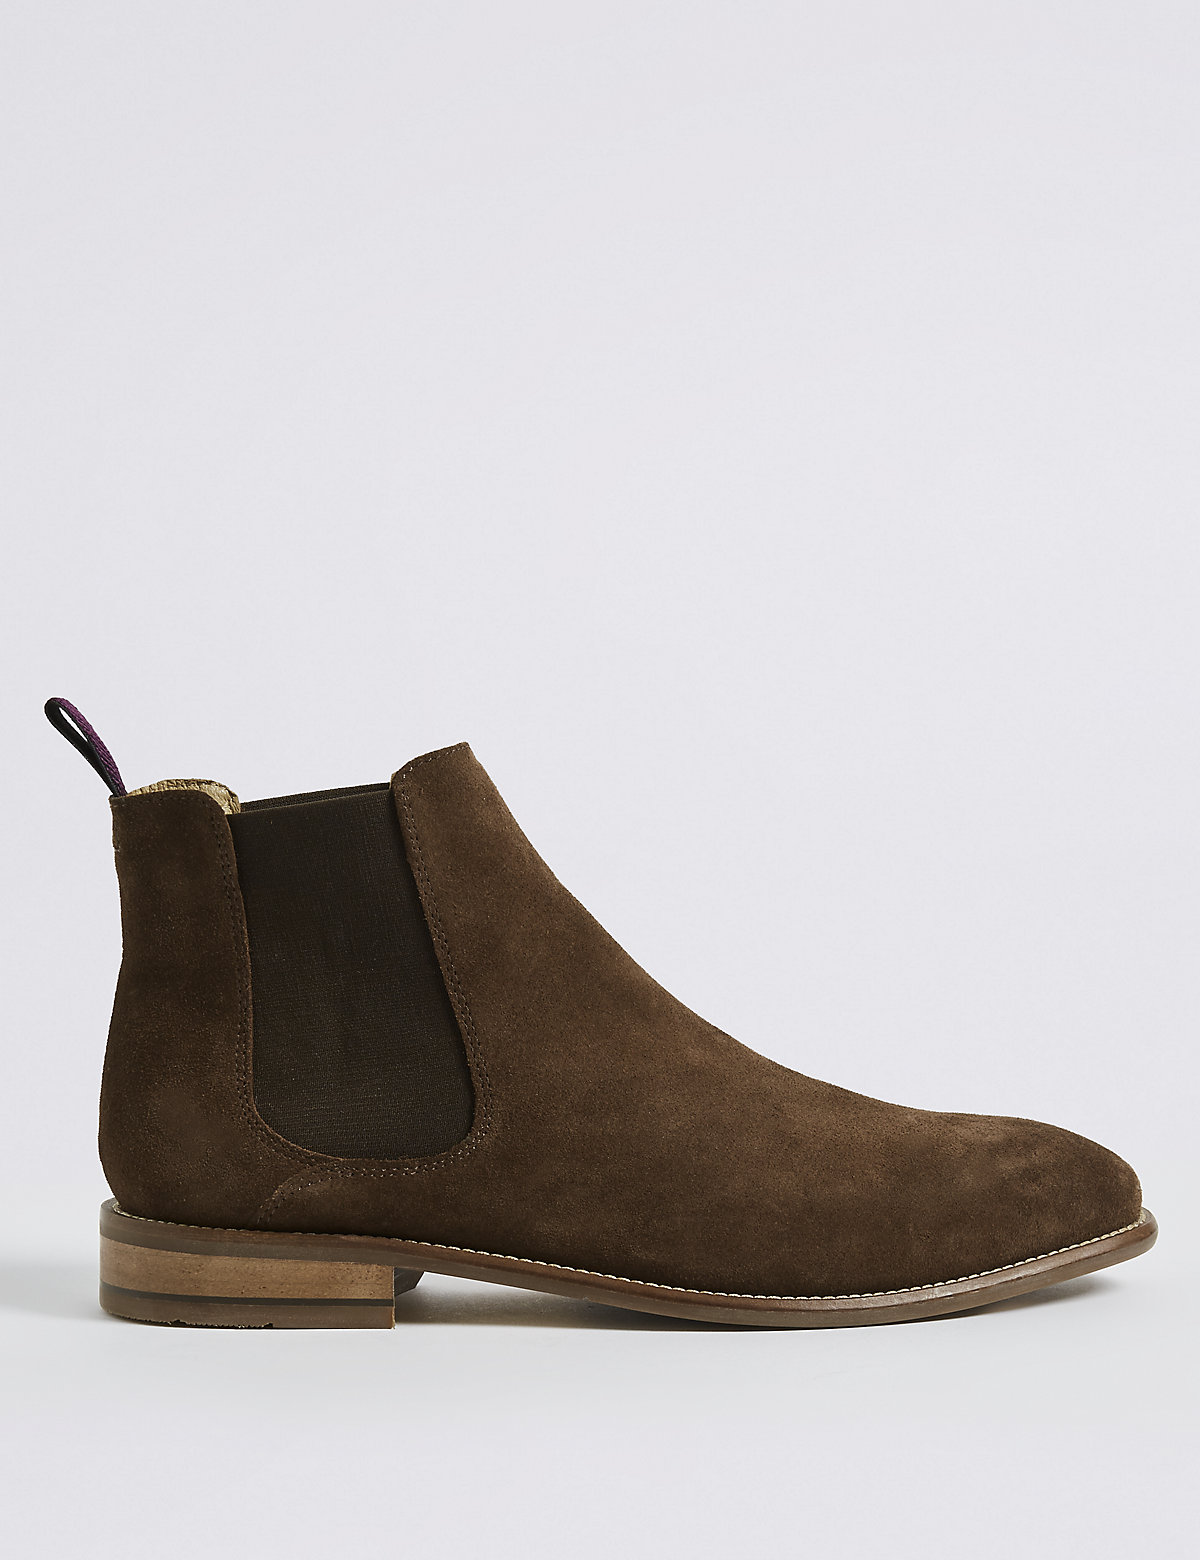 Marks & Spencer Brown Extra Wide Fit Suede Chelsea Boots